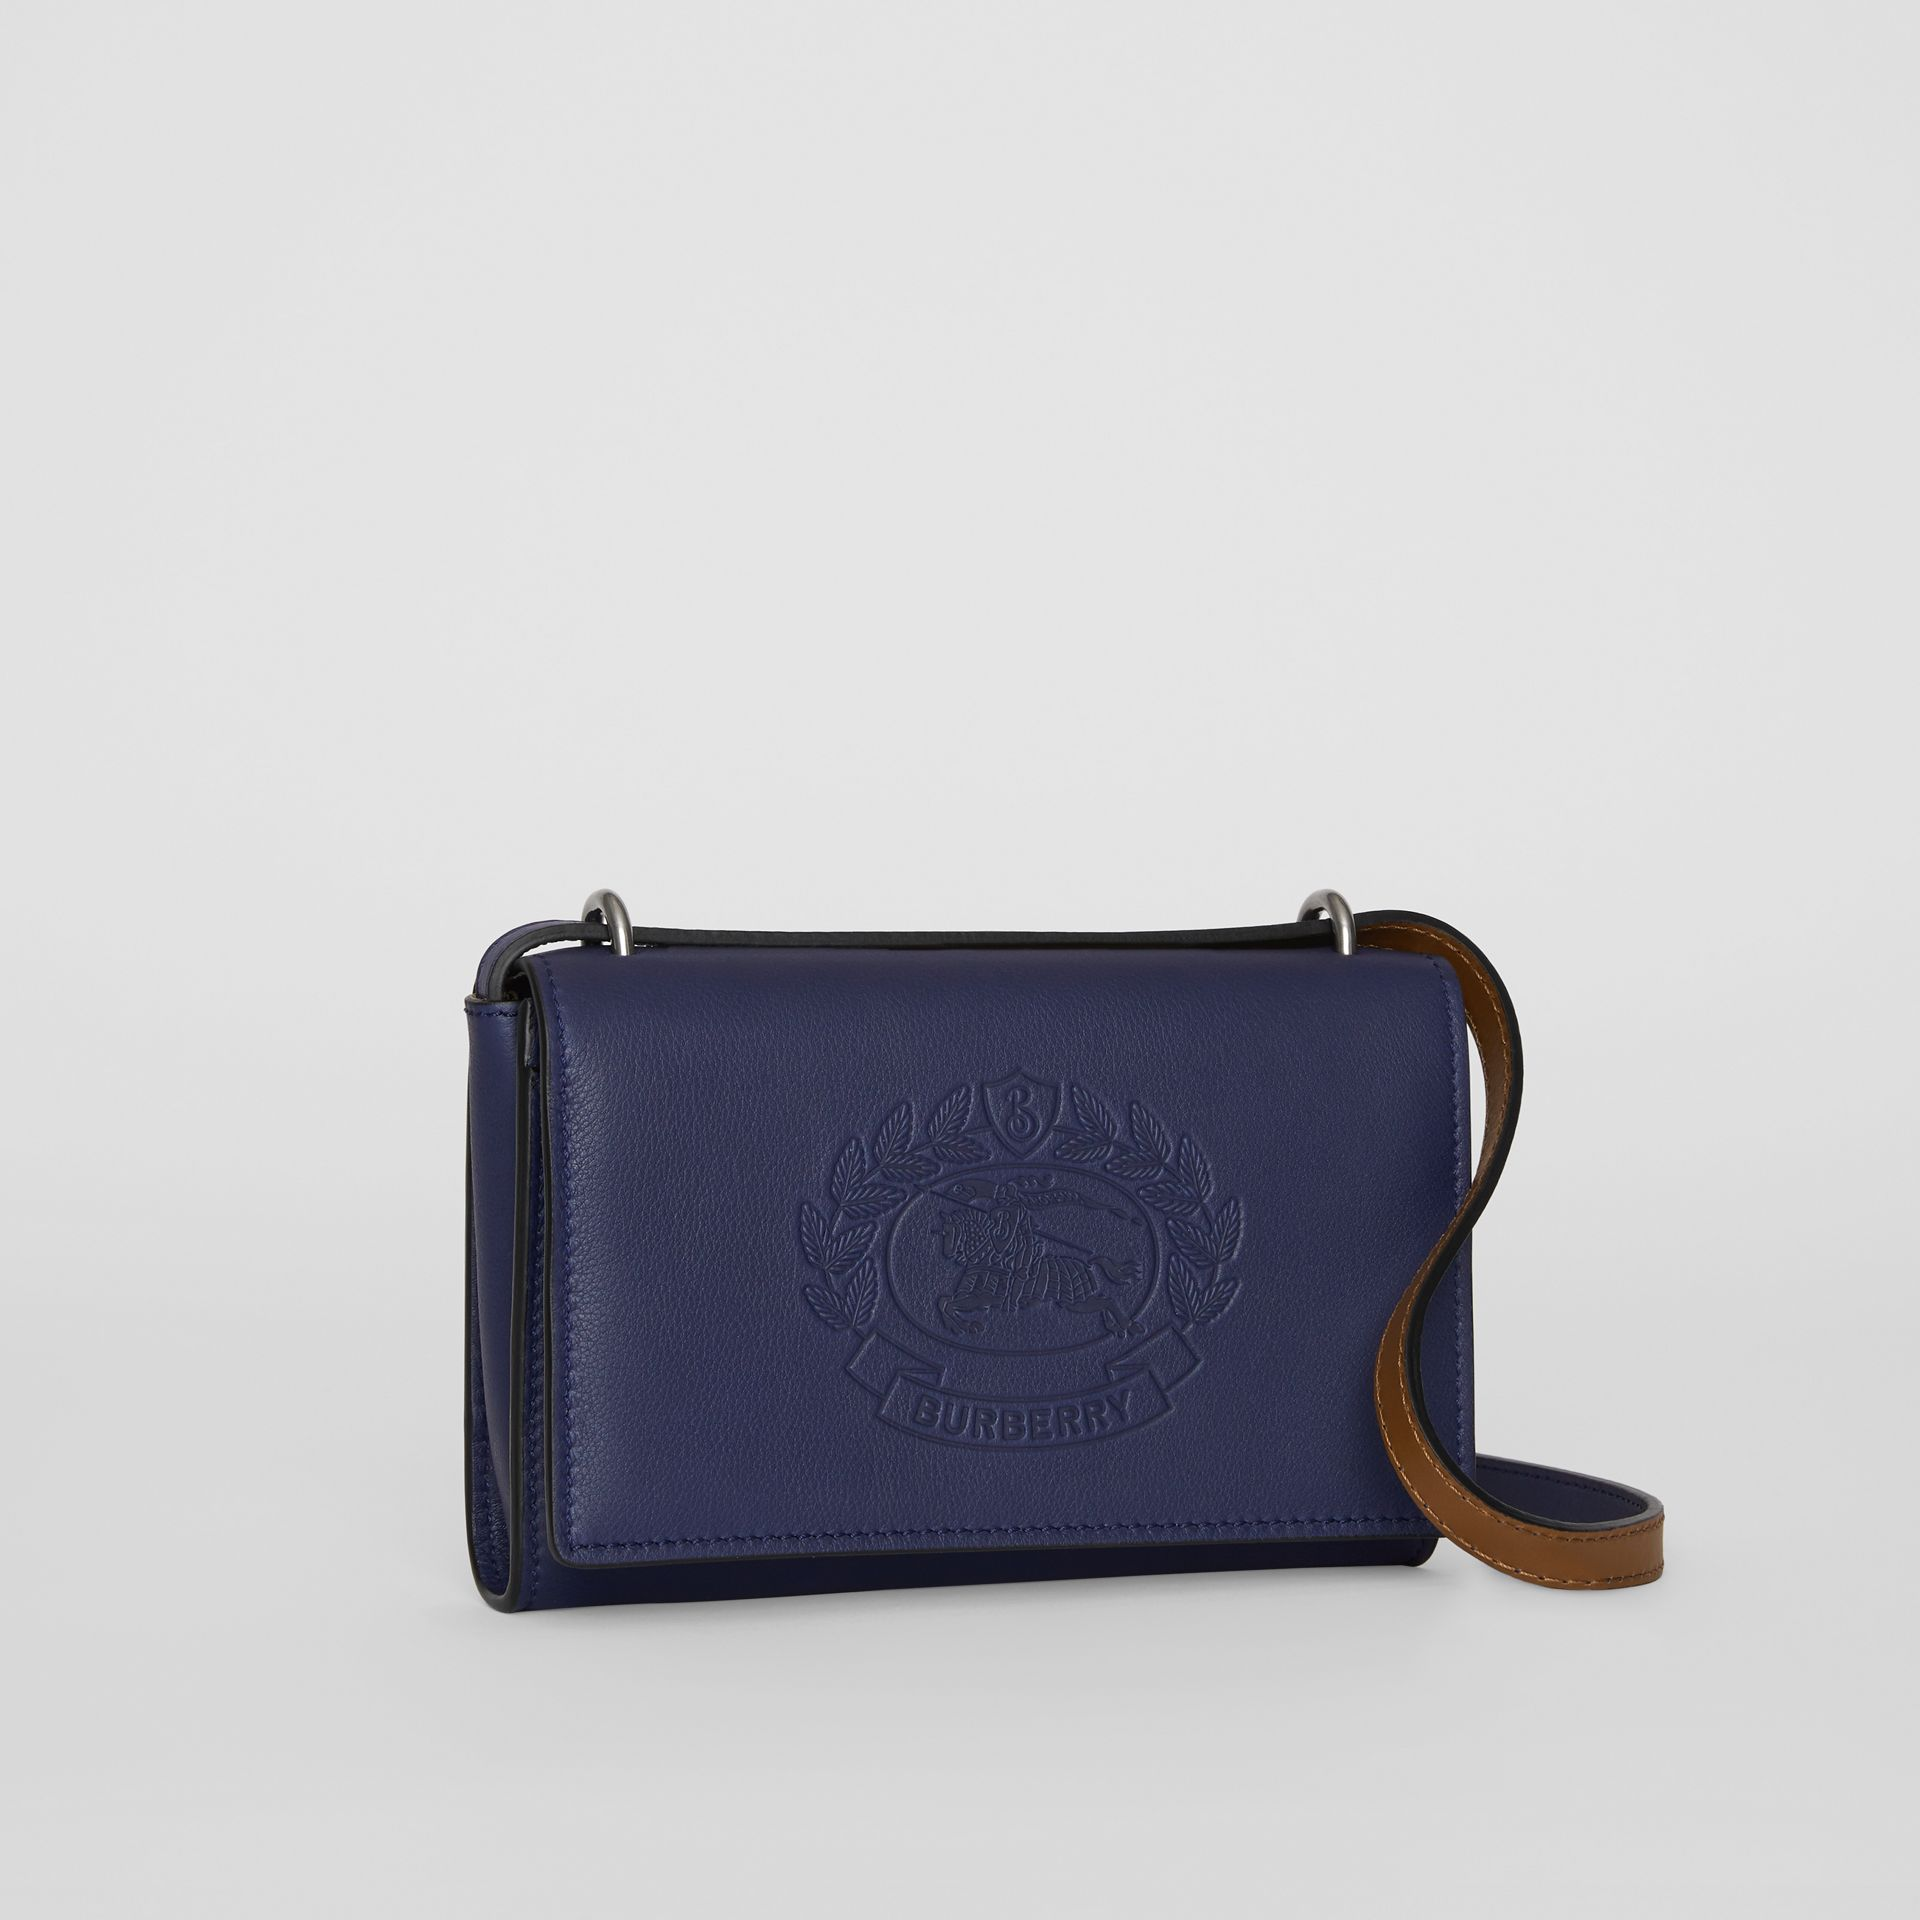 Embossed Crest Leather Wallet with Detachable Strap in Regency Blue - Women | Burberry Canada - gallery image 6